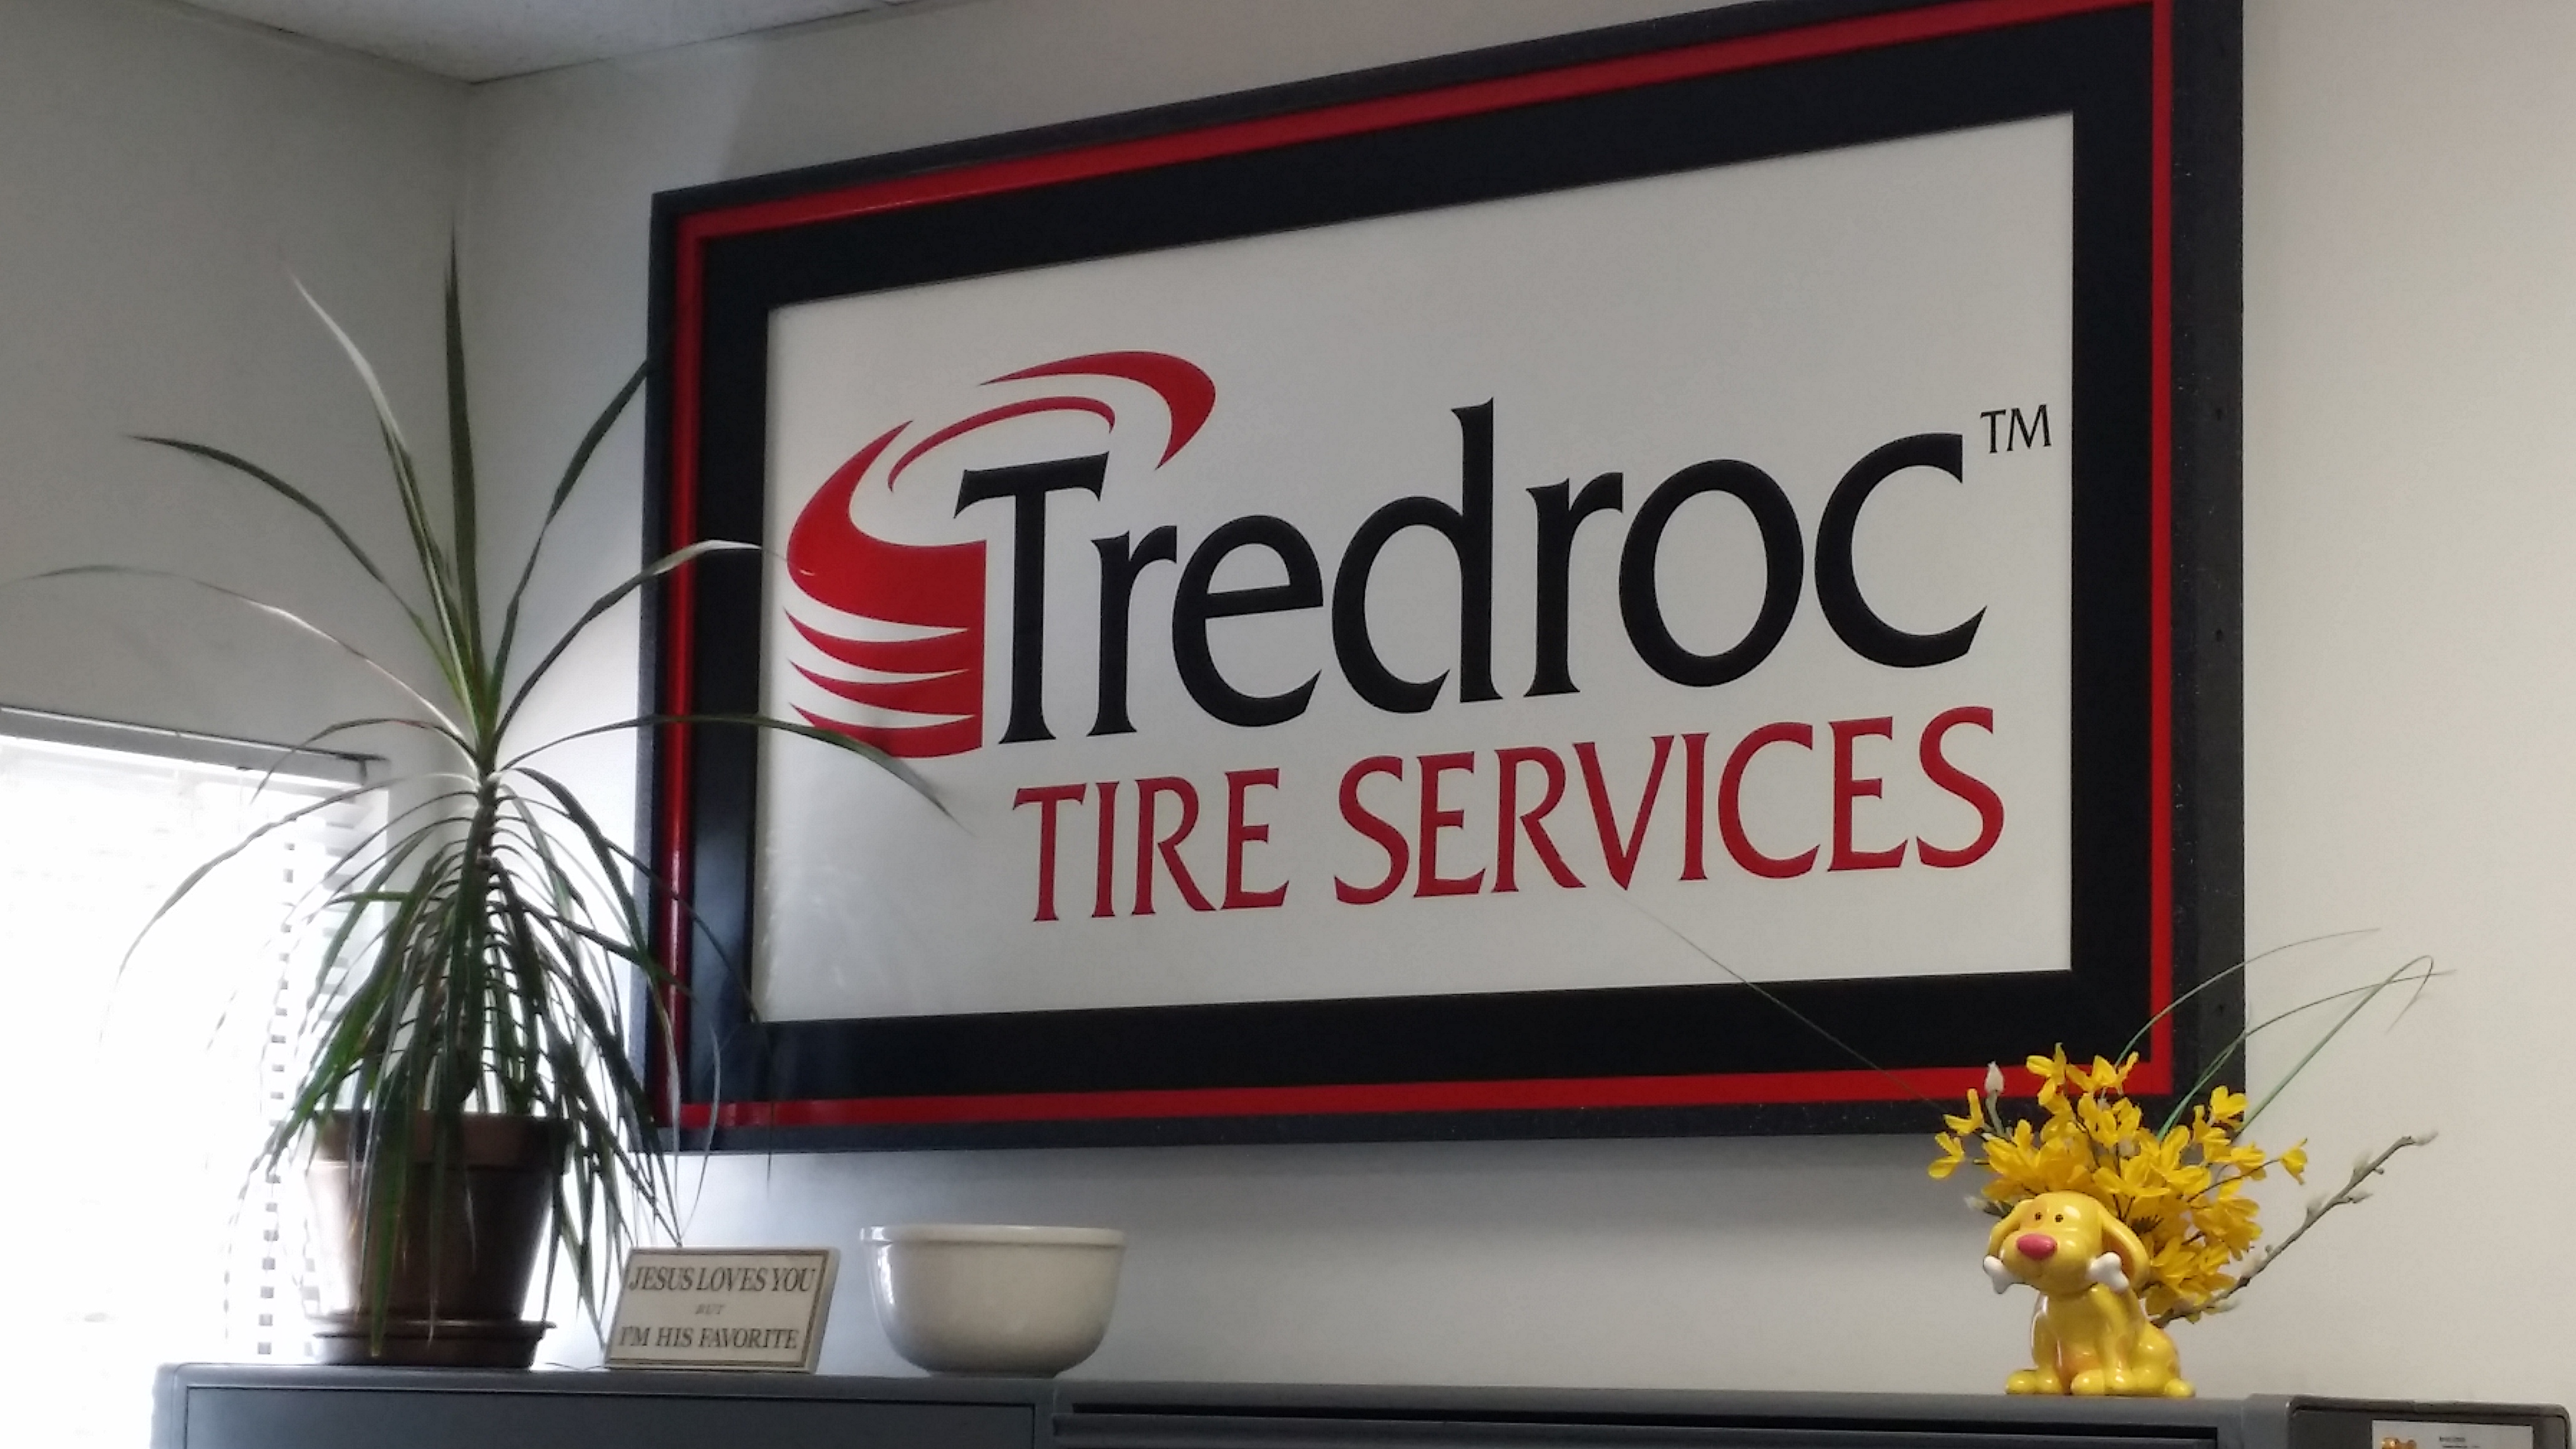 Tredroc Tire Services in Lafayette, IN 47905 ...